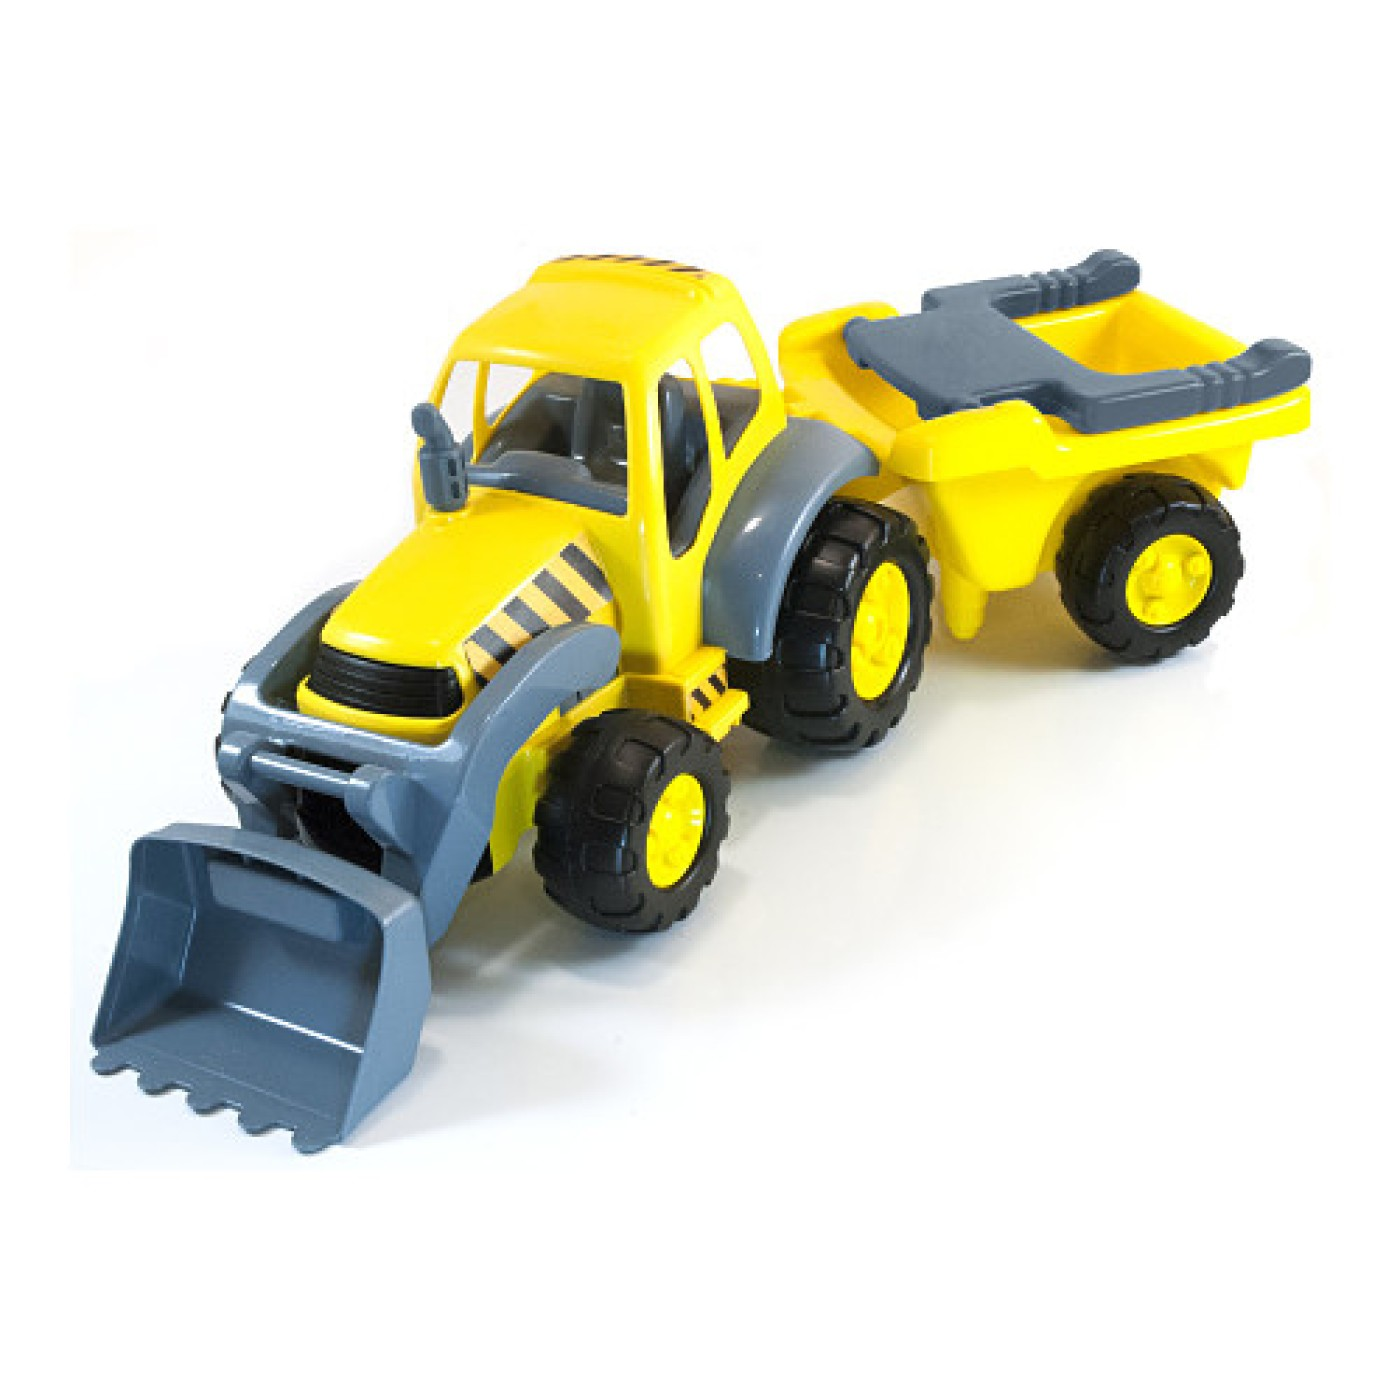 Super Tractor with Trailor